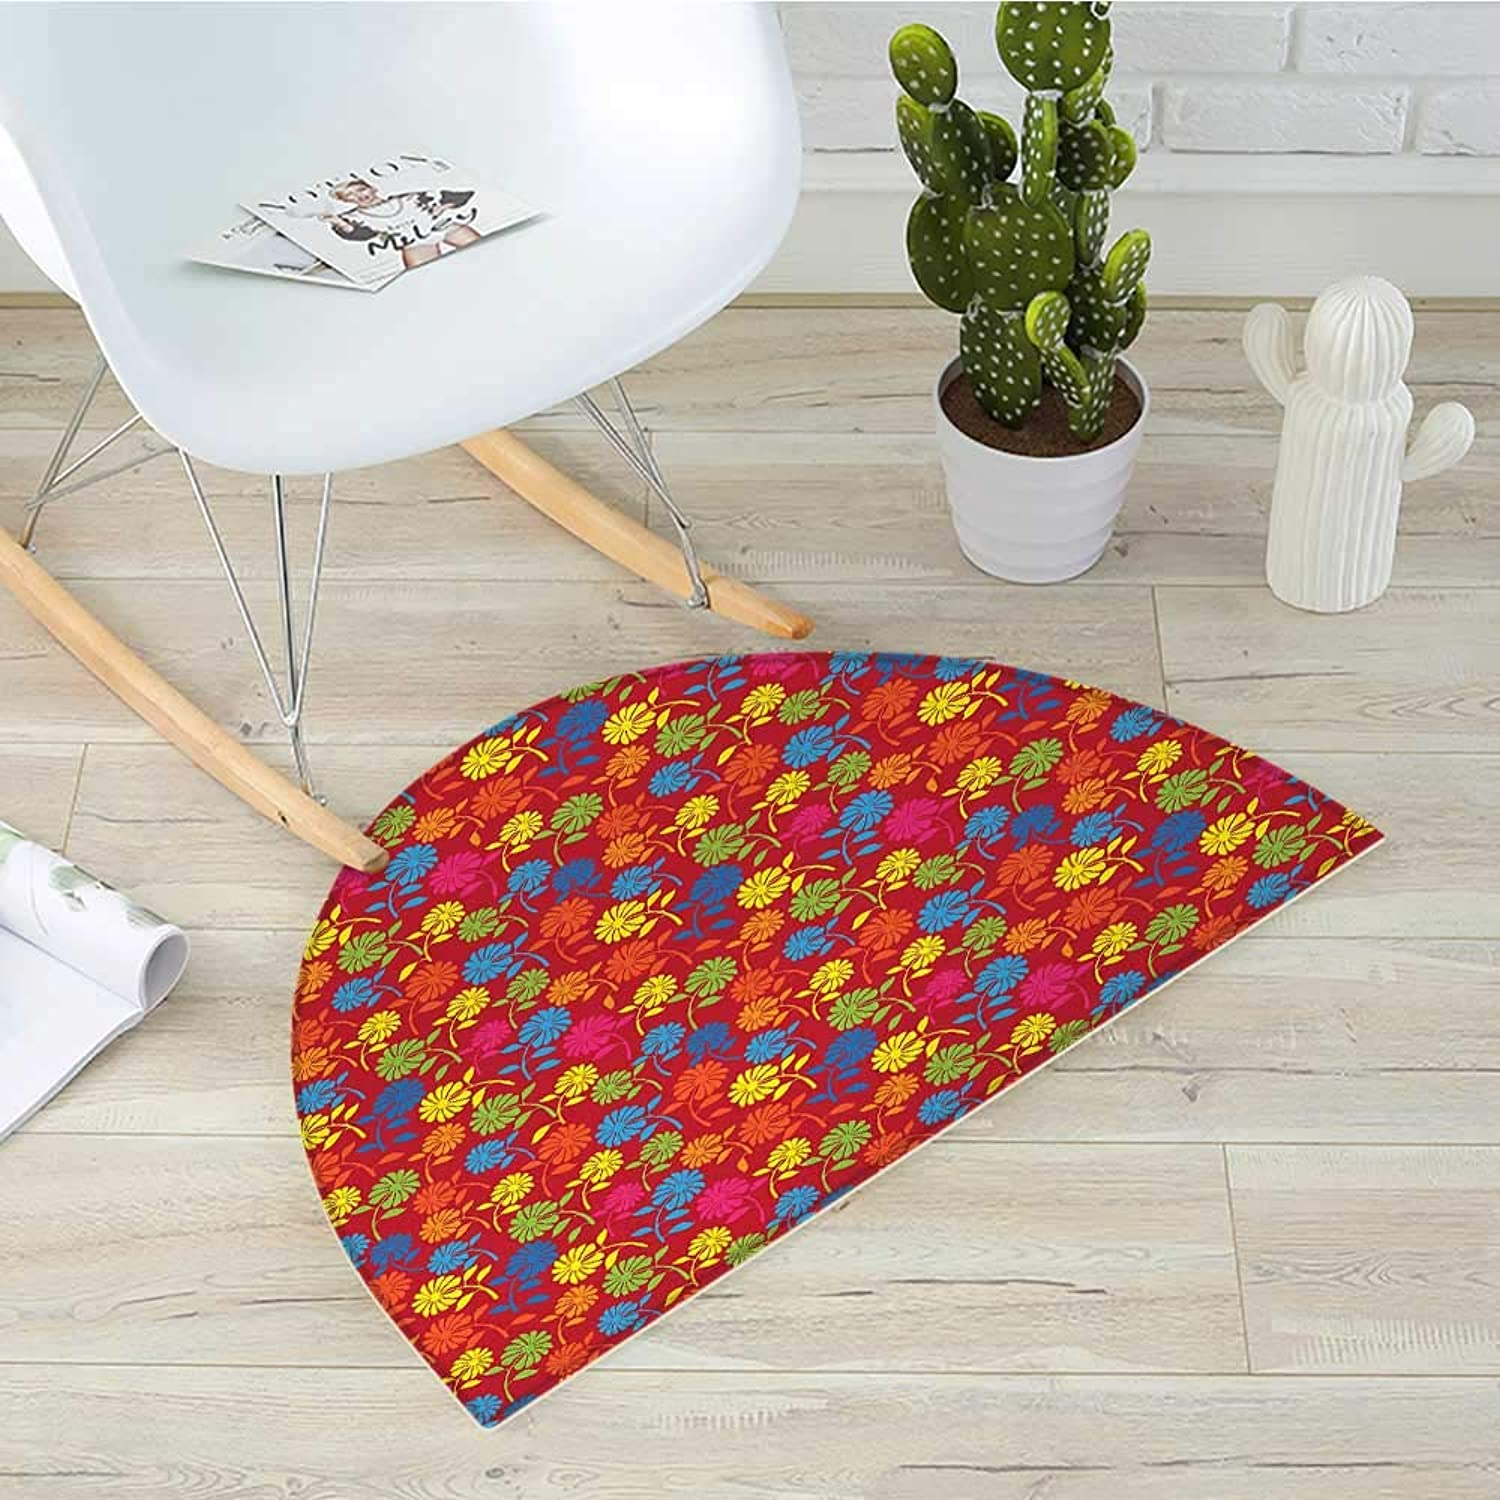 Flower Semicircle Doormat colorful Blooming Daisies on a Warm colord Background Rainbow Wildflower Pattern Halfmoon doormats H 43.3  xD 64.9  Multicolor